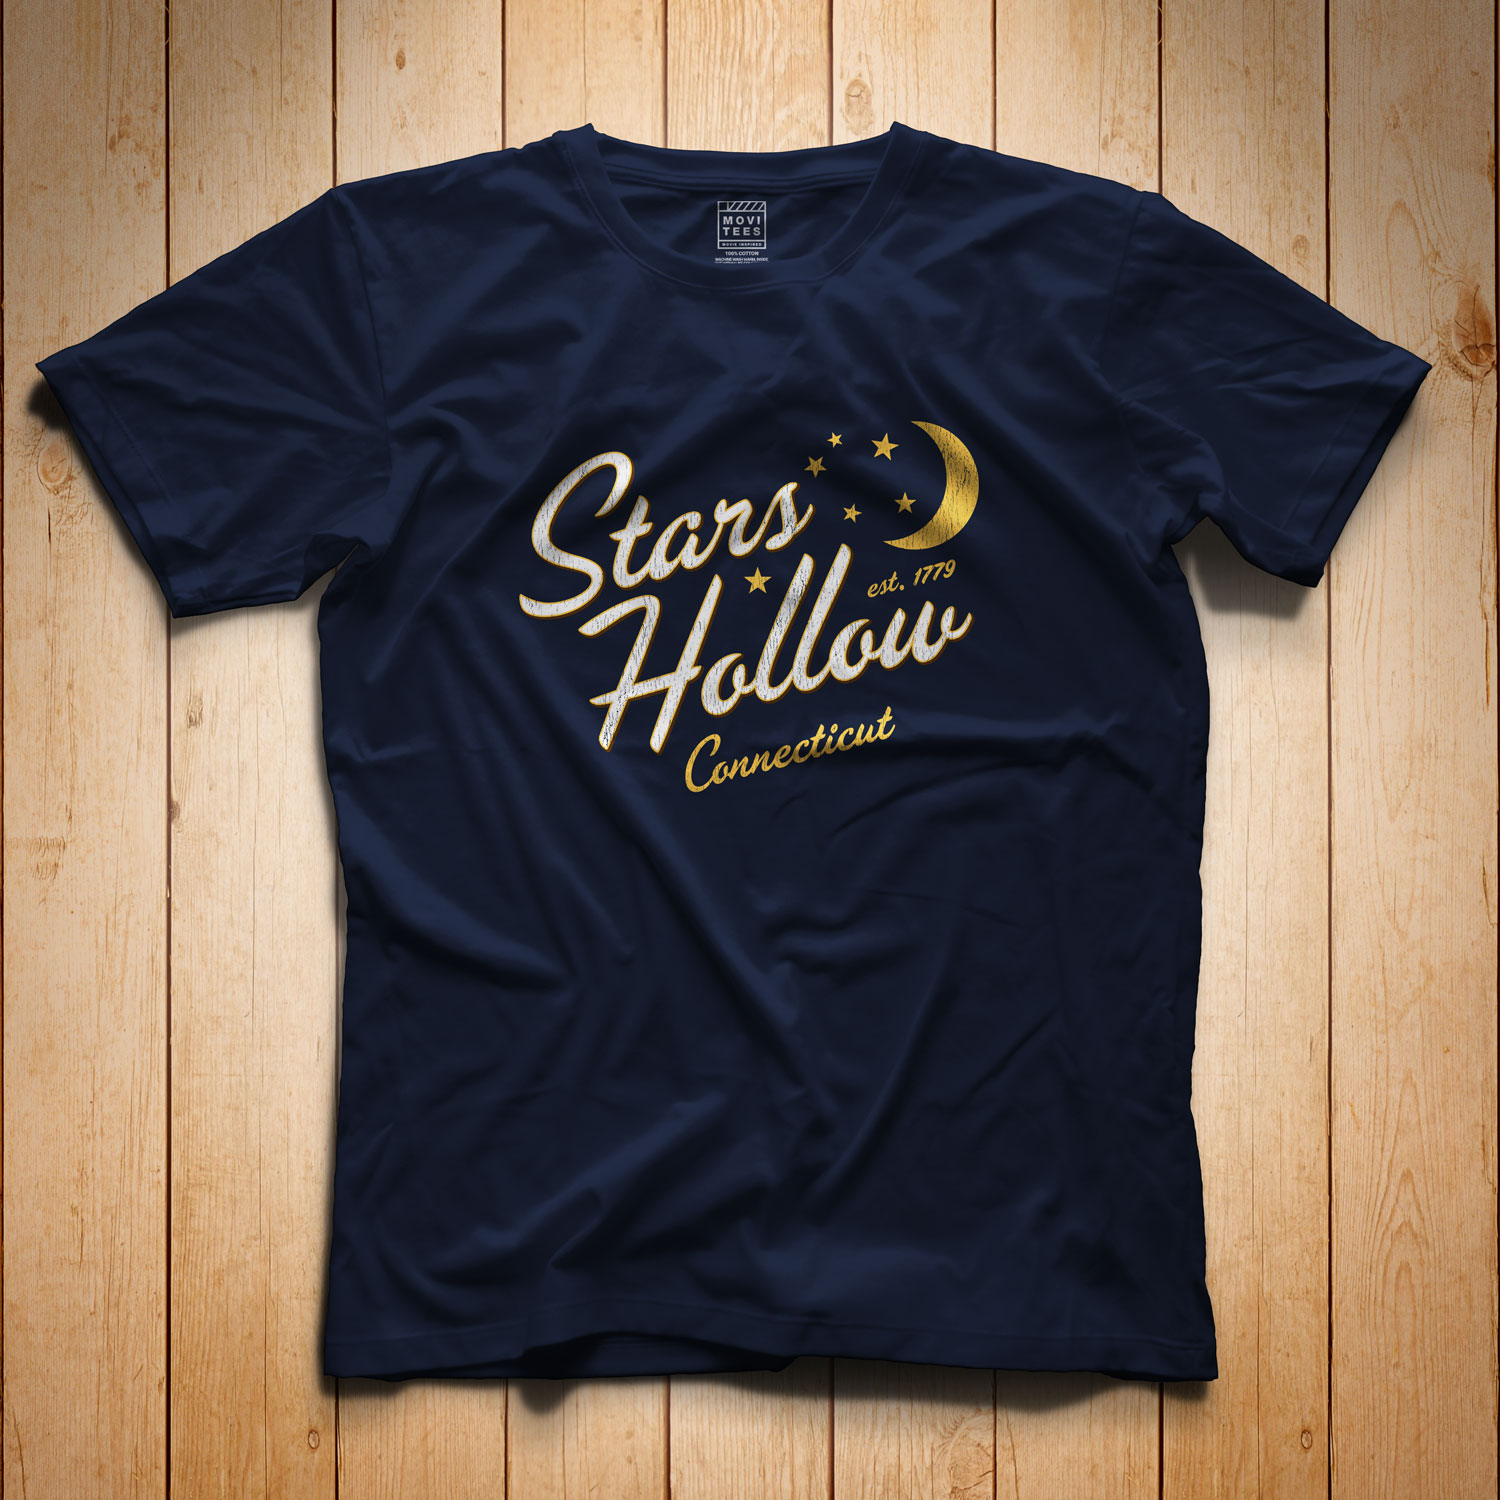 Stars-Hollow-Gilmore-Girls-Inspired-TShirt-by-MoviTees_N.jpg